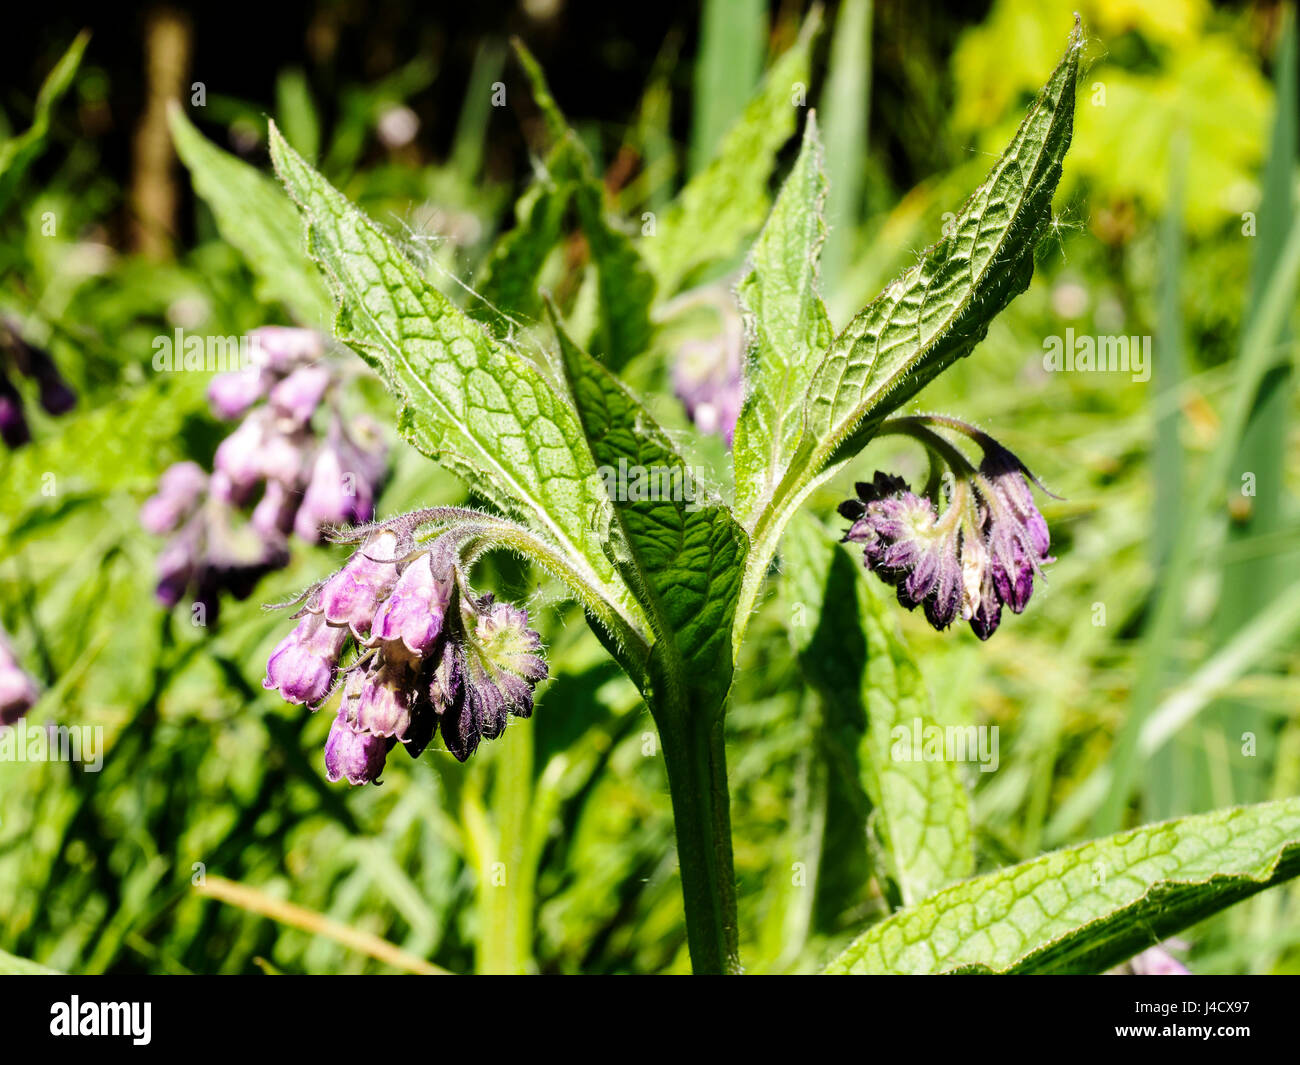 Common Comfrey is a hairy plant of damp ground and is often found beside rivers, in fens and ditches. - Stock Image